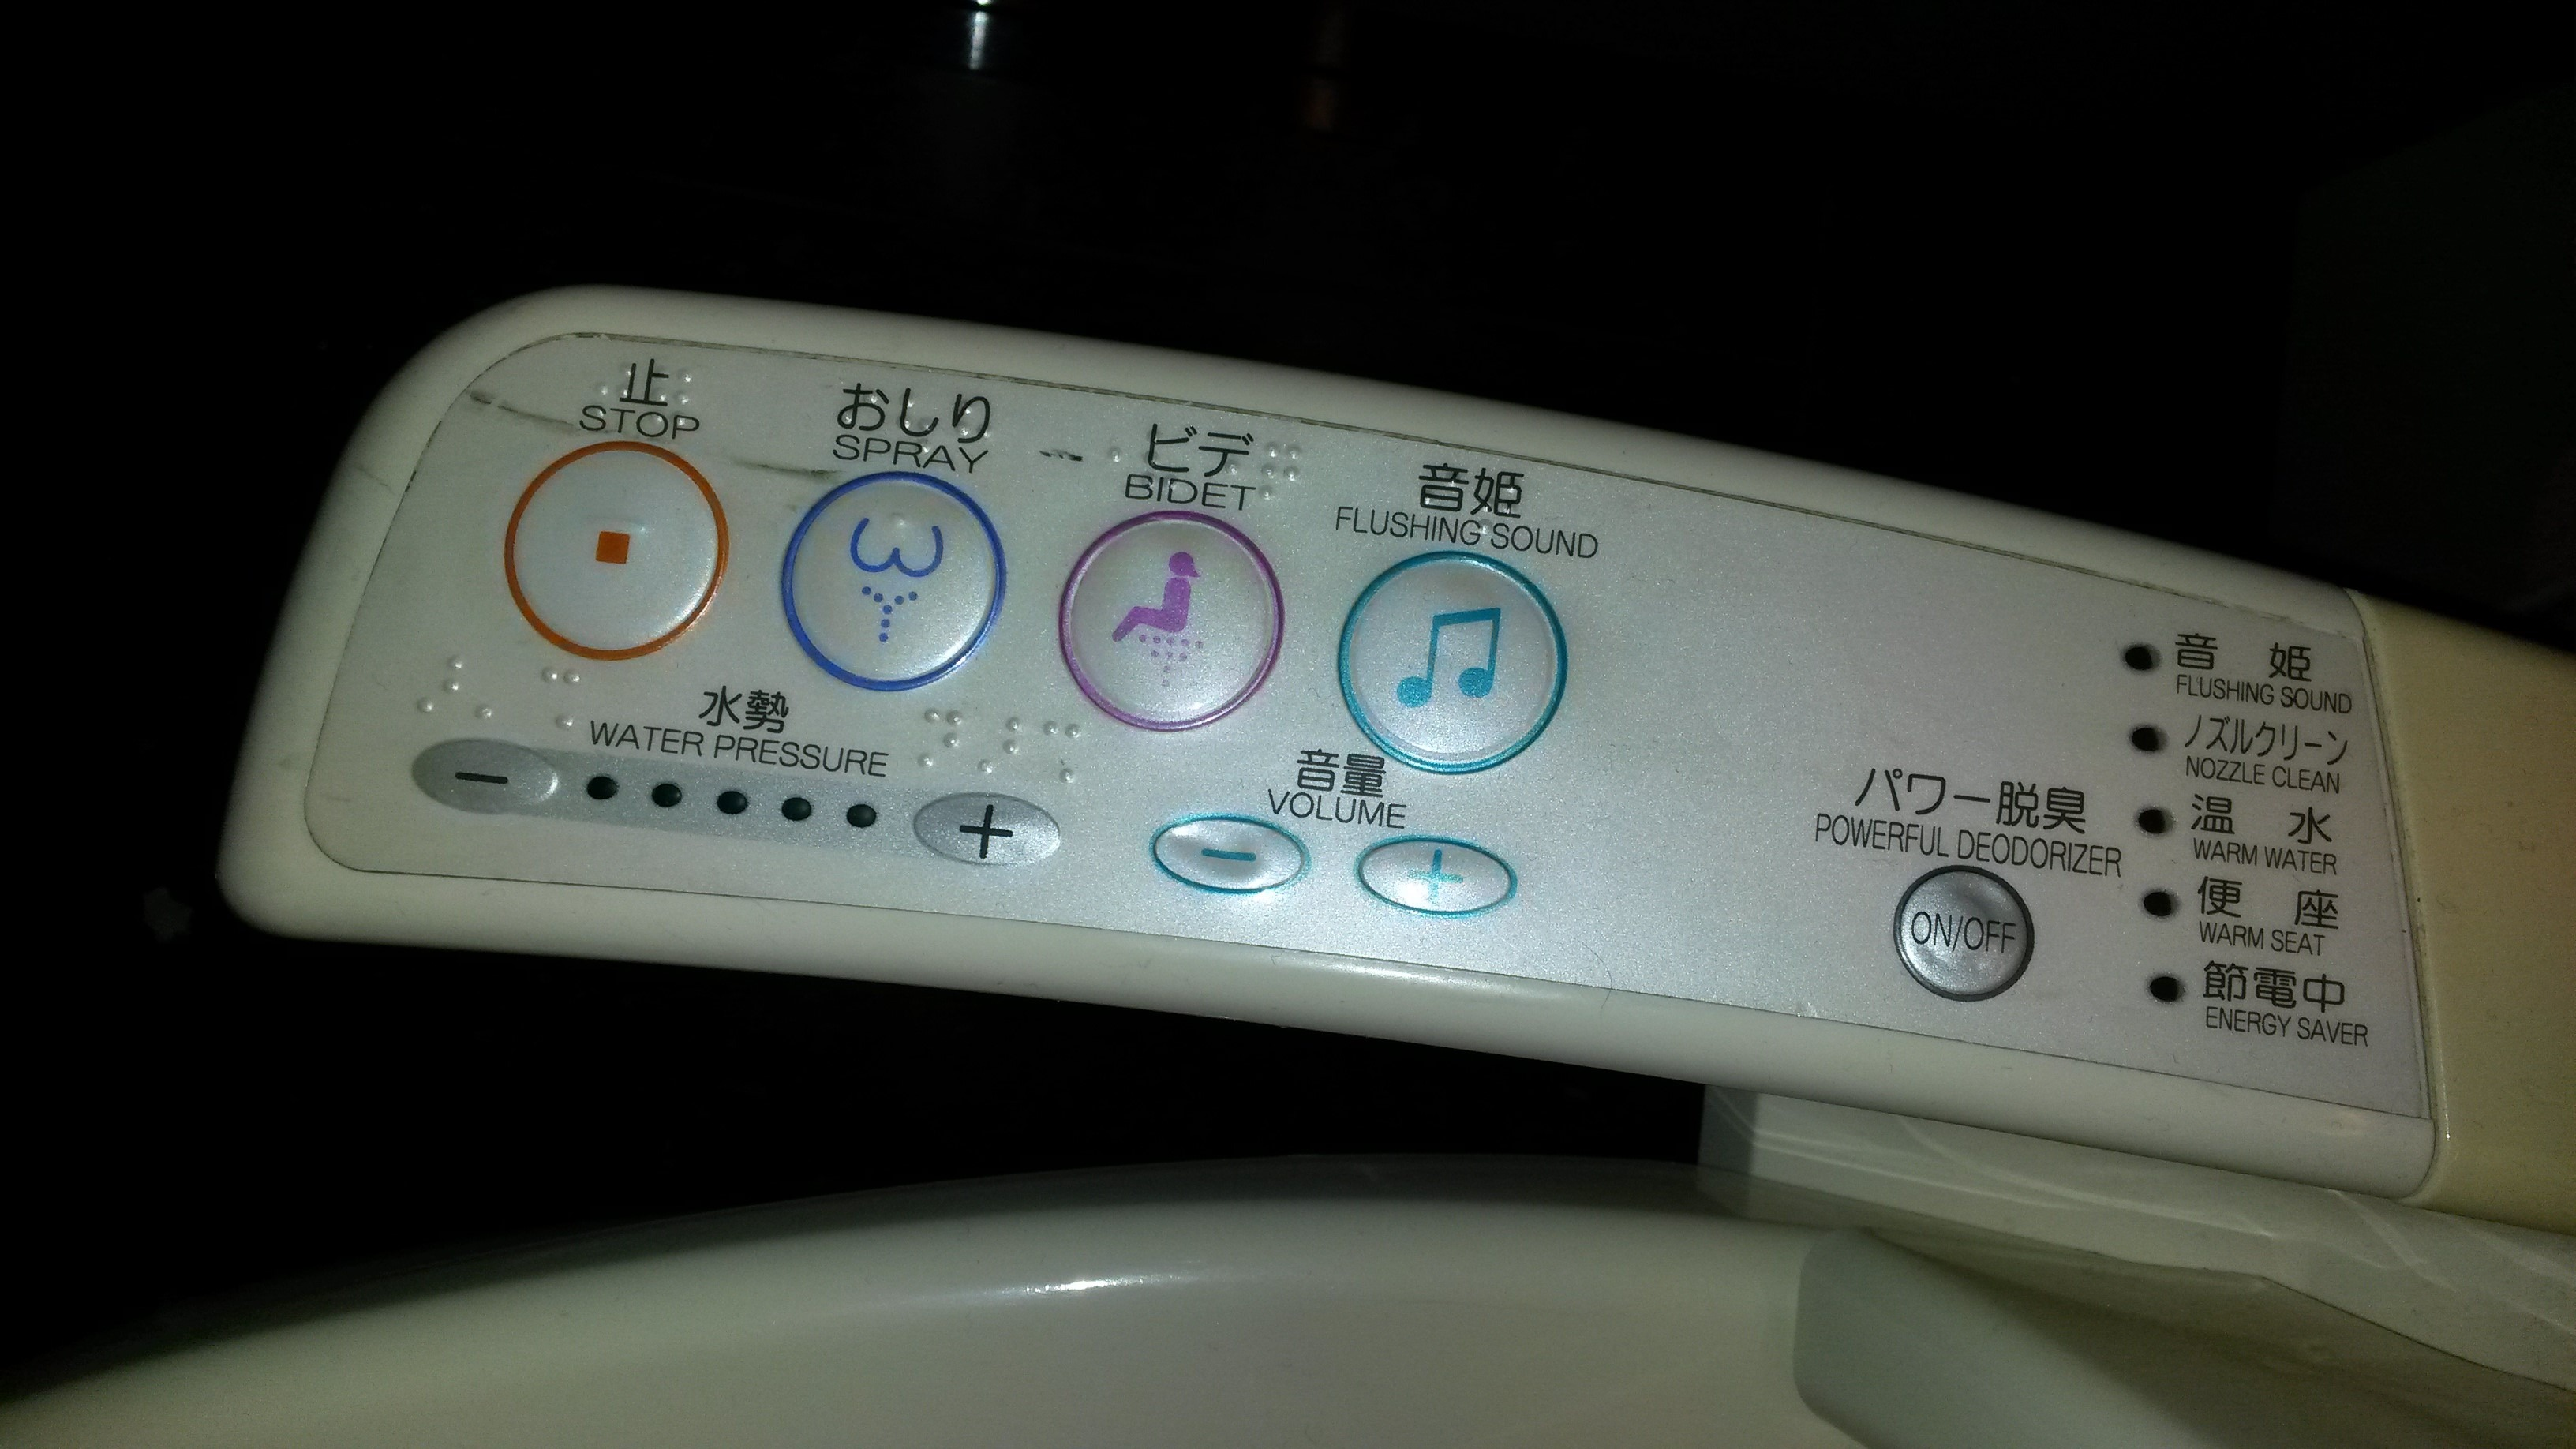 Japan Bucket List trying Japanese gadgets including the toilet controls